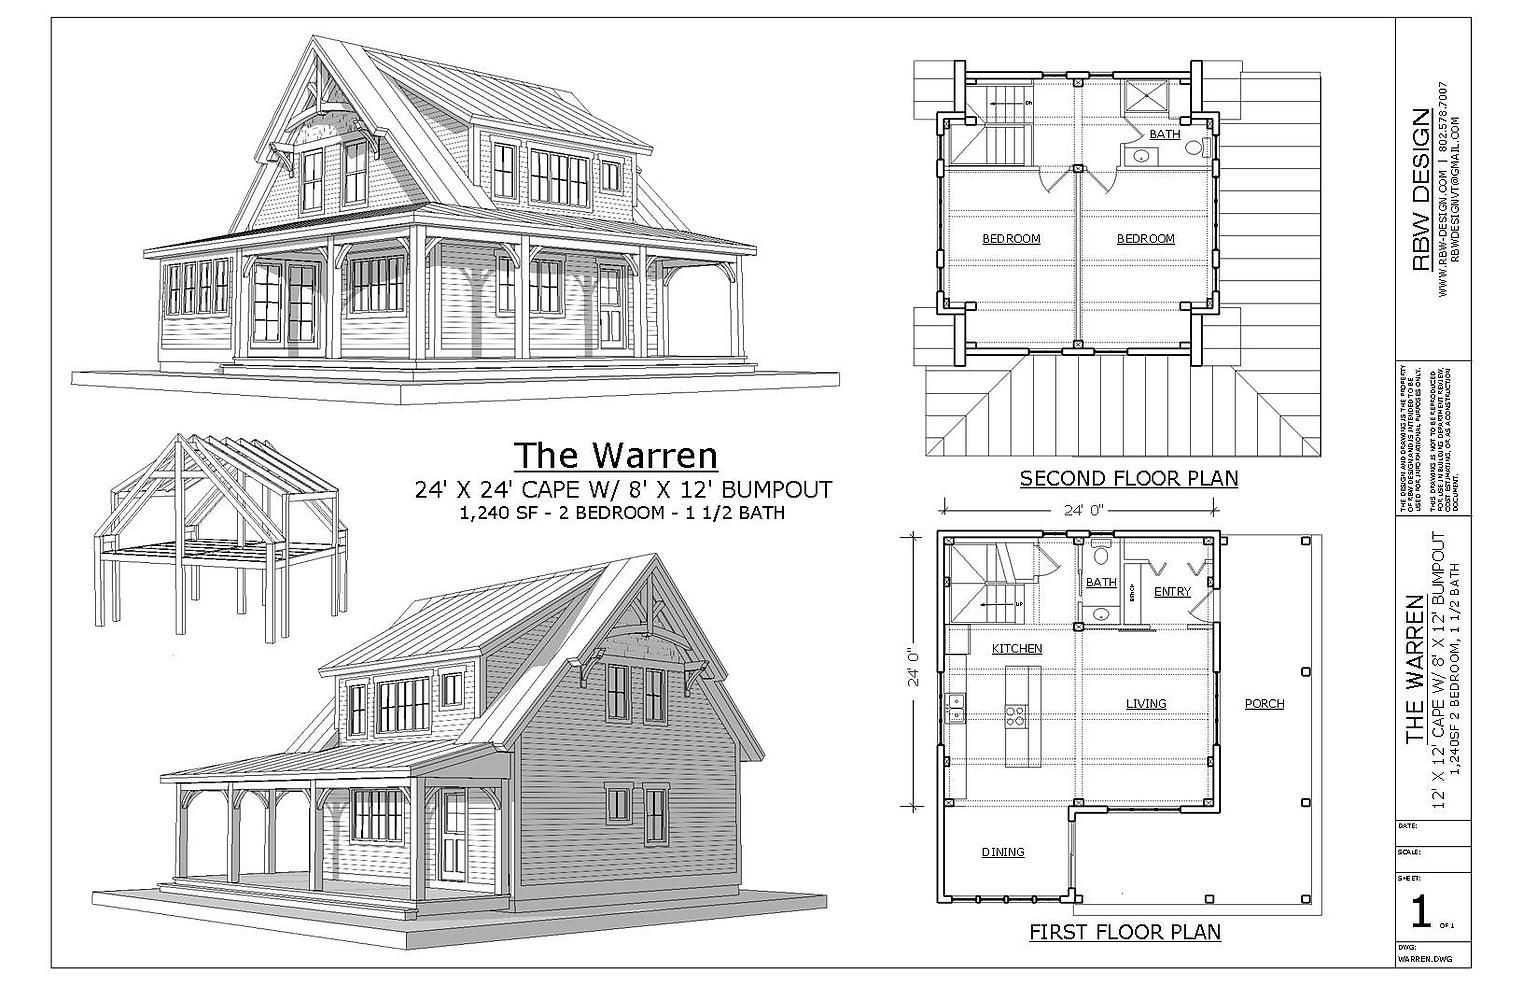 Vermont Home Design Architecture And Interior Design Warren Ski House A Frame House Plans Cabin Plans With Loft House Floor Plans